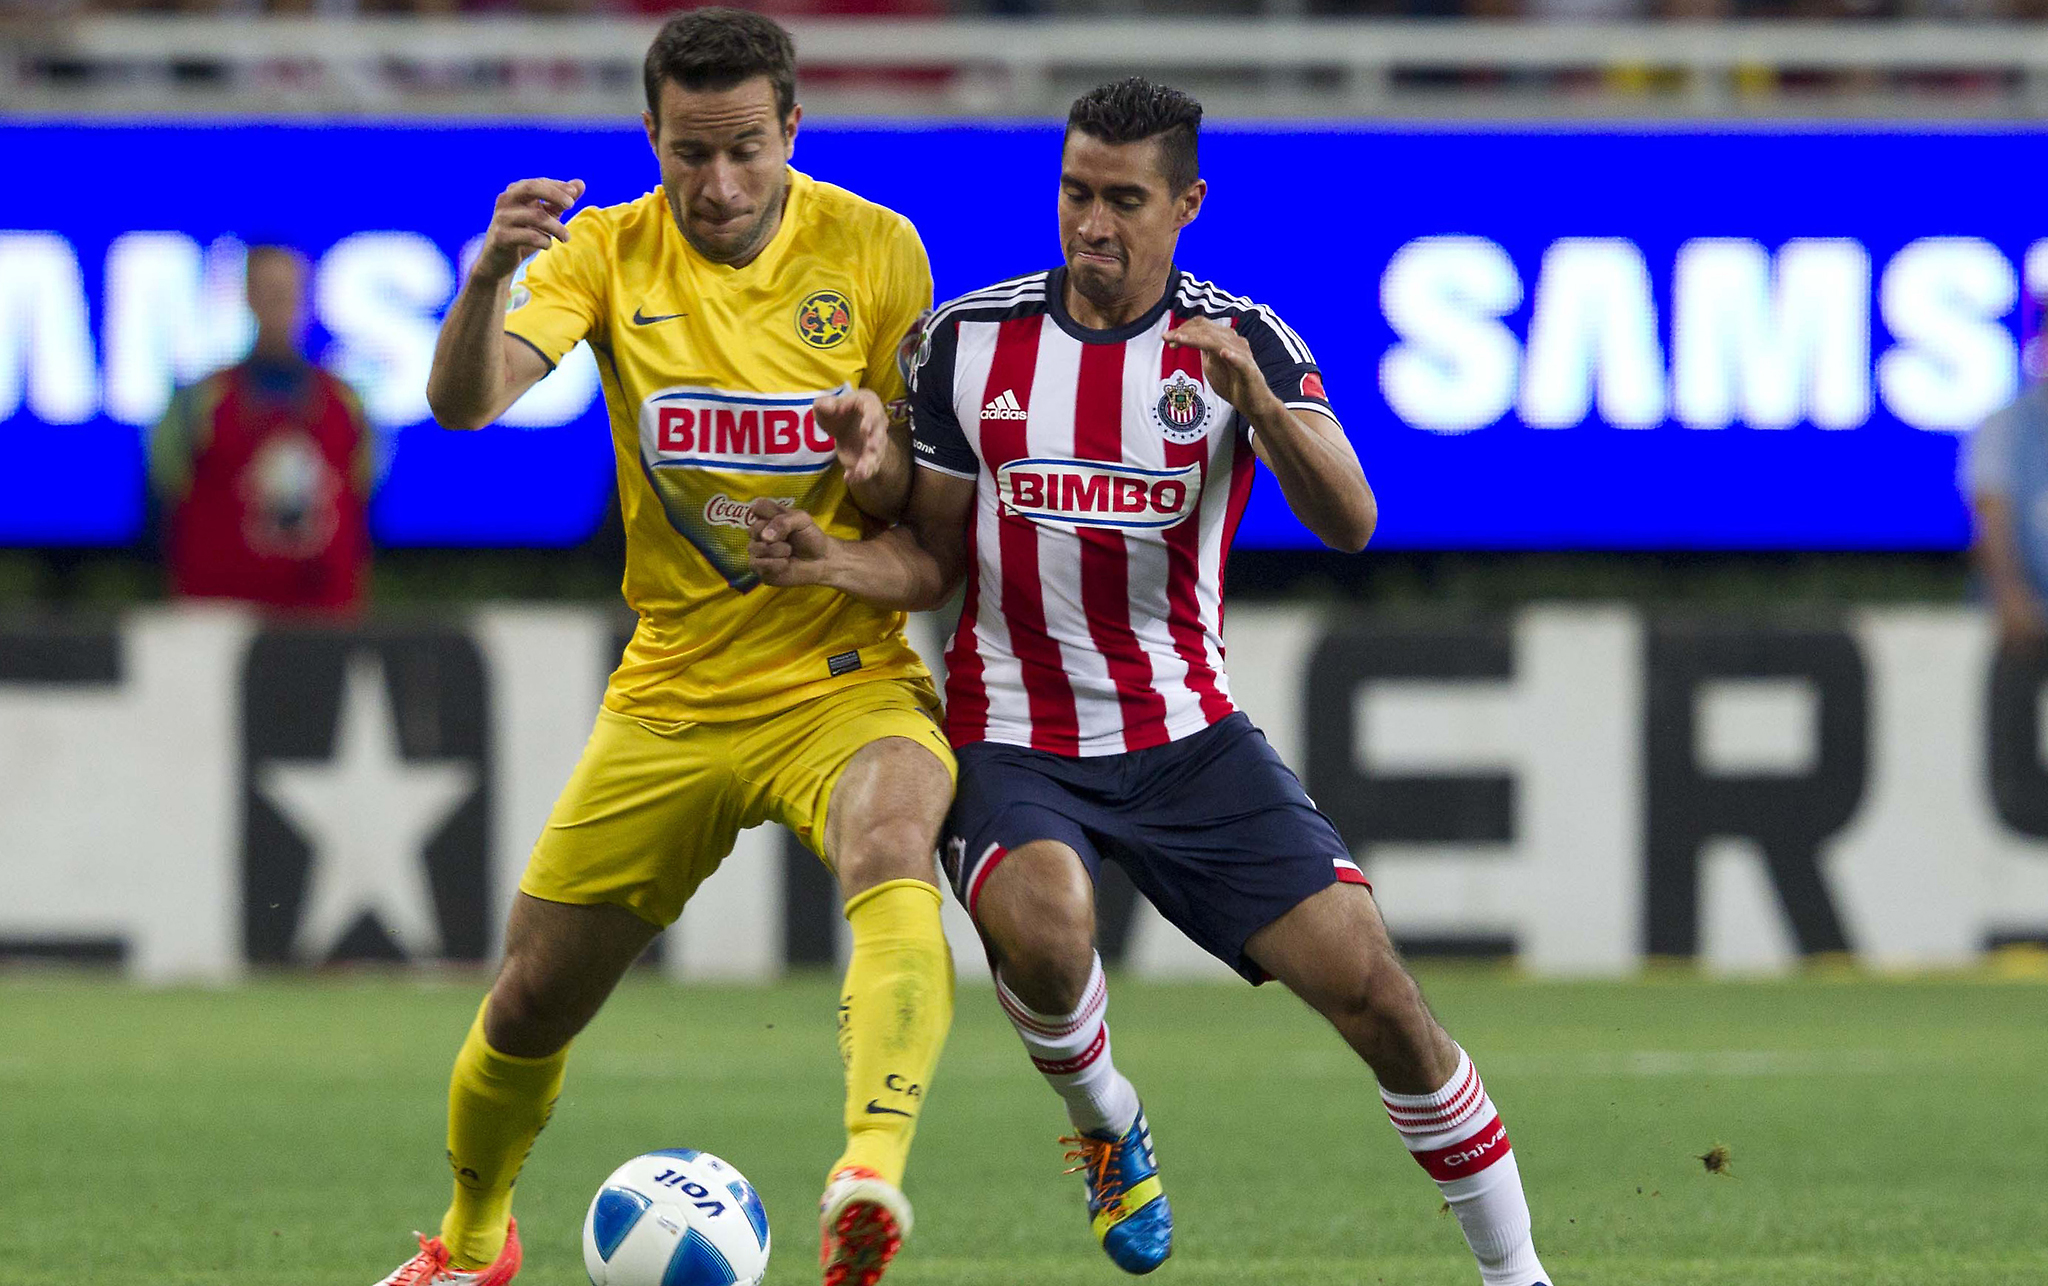 Chivas de Guadalajara's Patricio Araujo, right, fights for the ball with America's Gabriel Rey during a Mexican soccer league match in Guadalajara, Sunday, March 30, 2014. (AP Photo/Refugio Ruiz) ORG XMIT: MXRR107